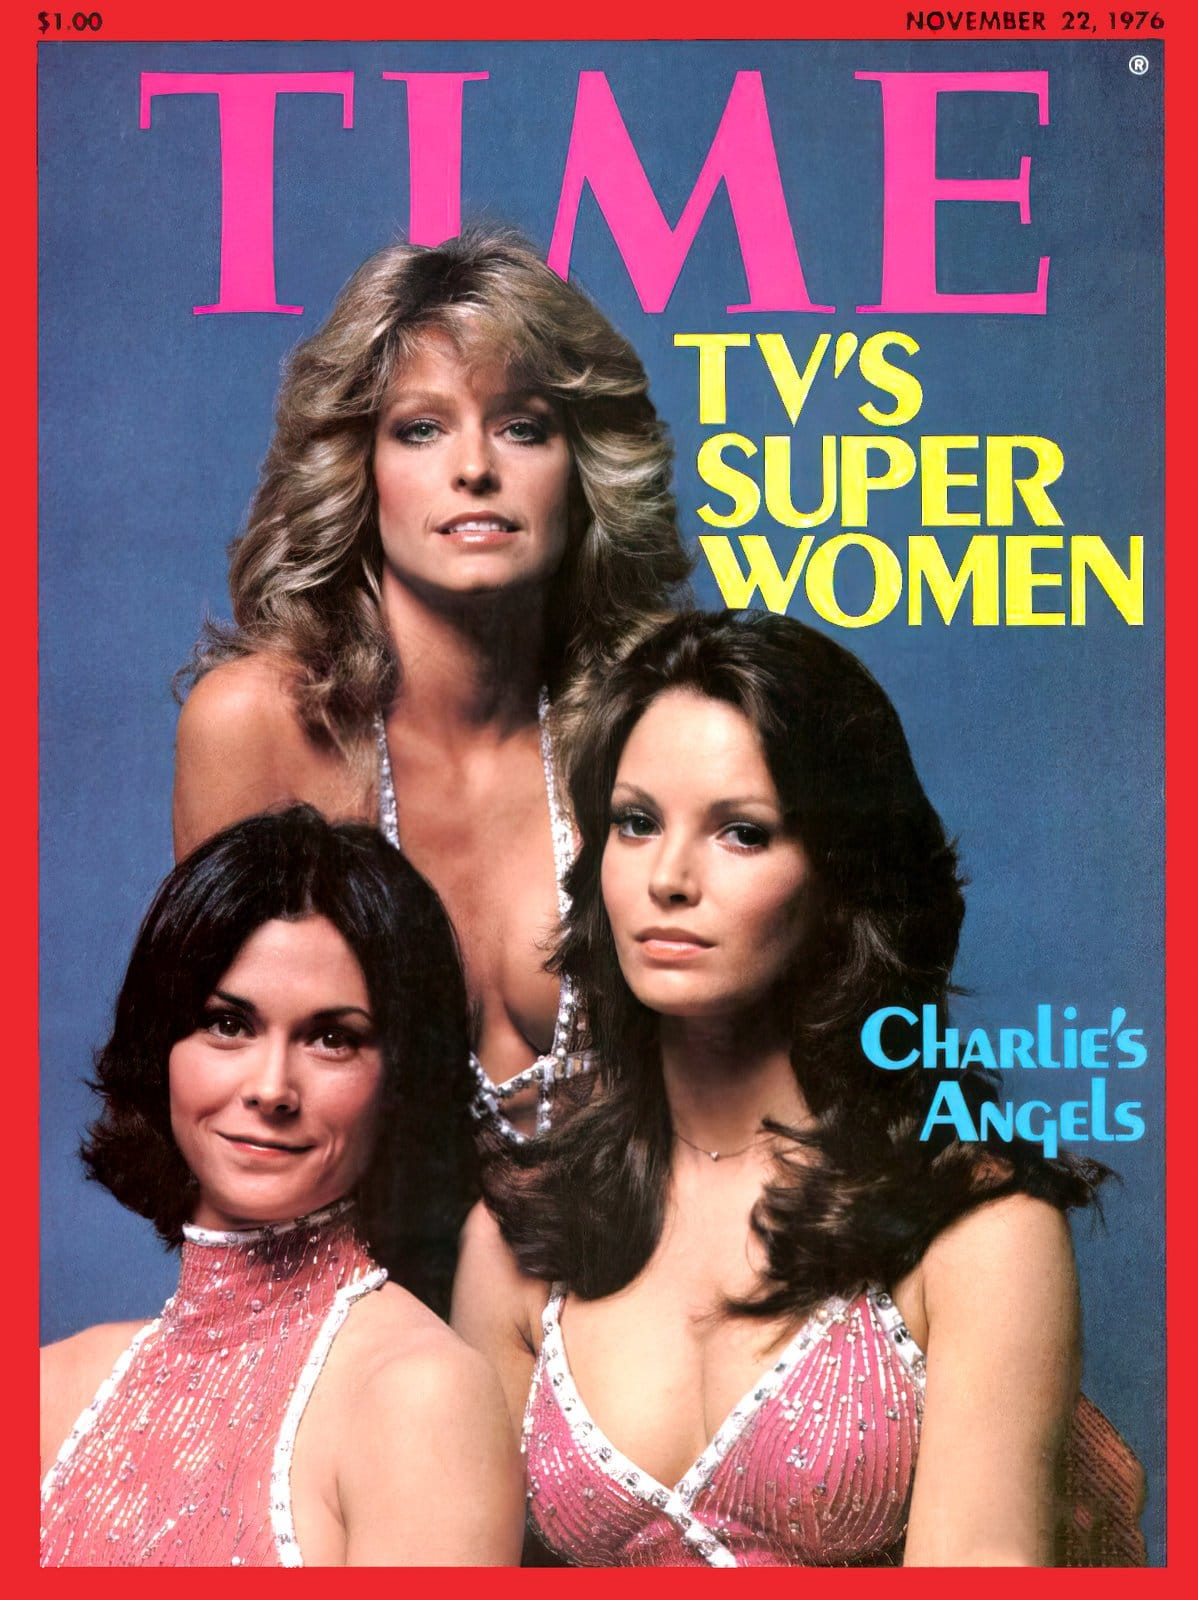 Charlie's Angels - Time magazine cover (1976)